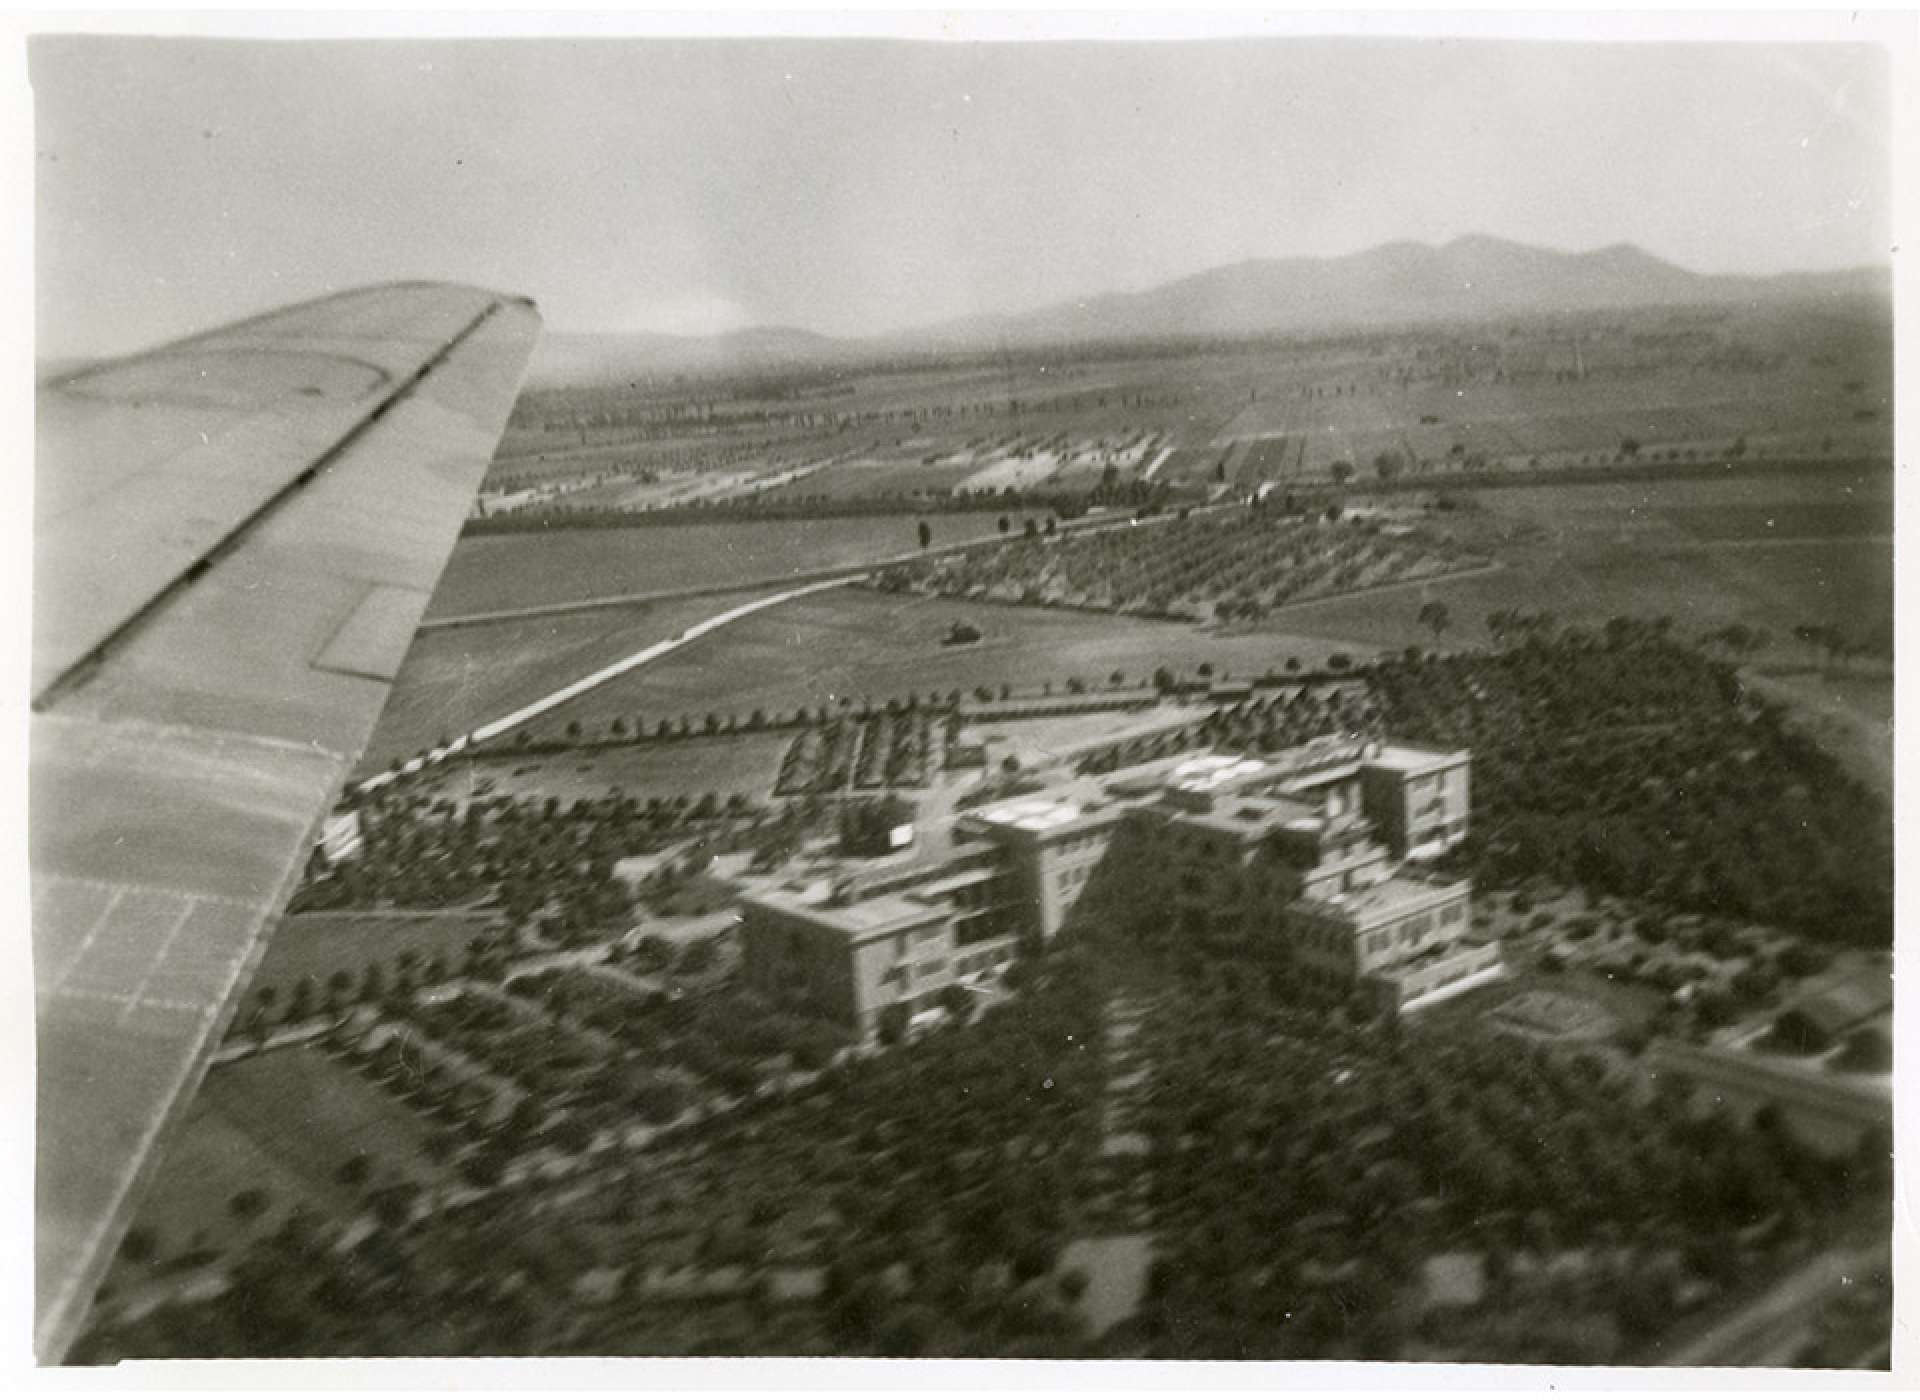 An aerial view of rear of the main building of the 24th General Hospital in Grosseto, Italy. The National WWII Museum.